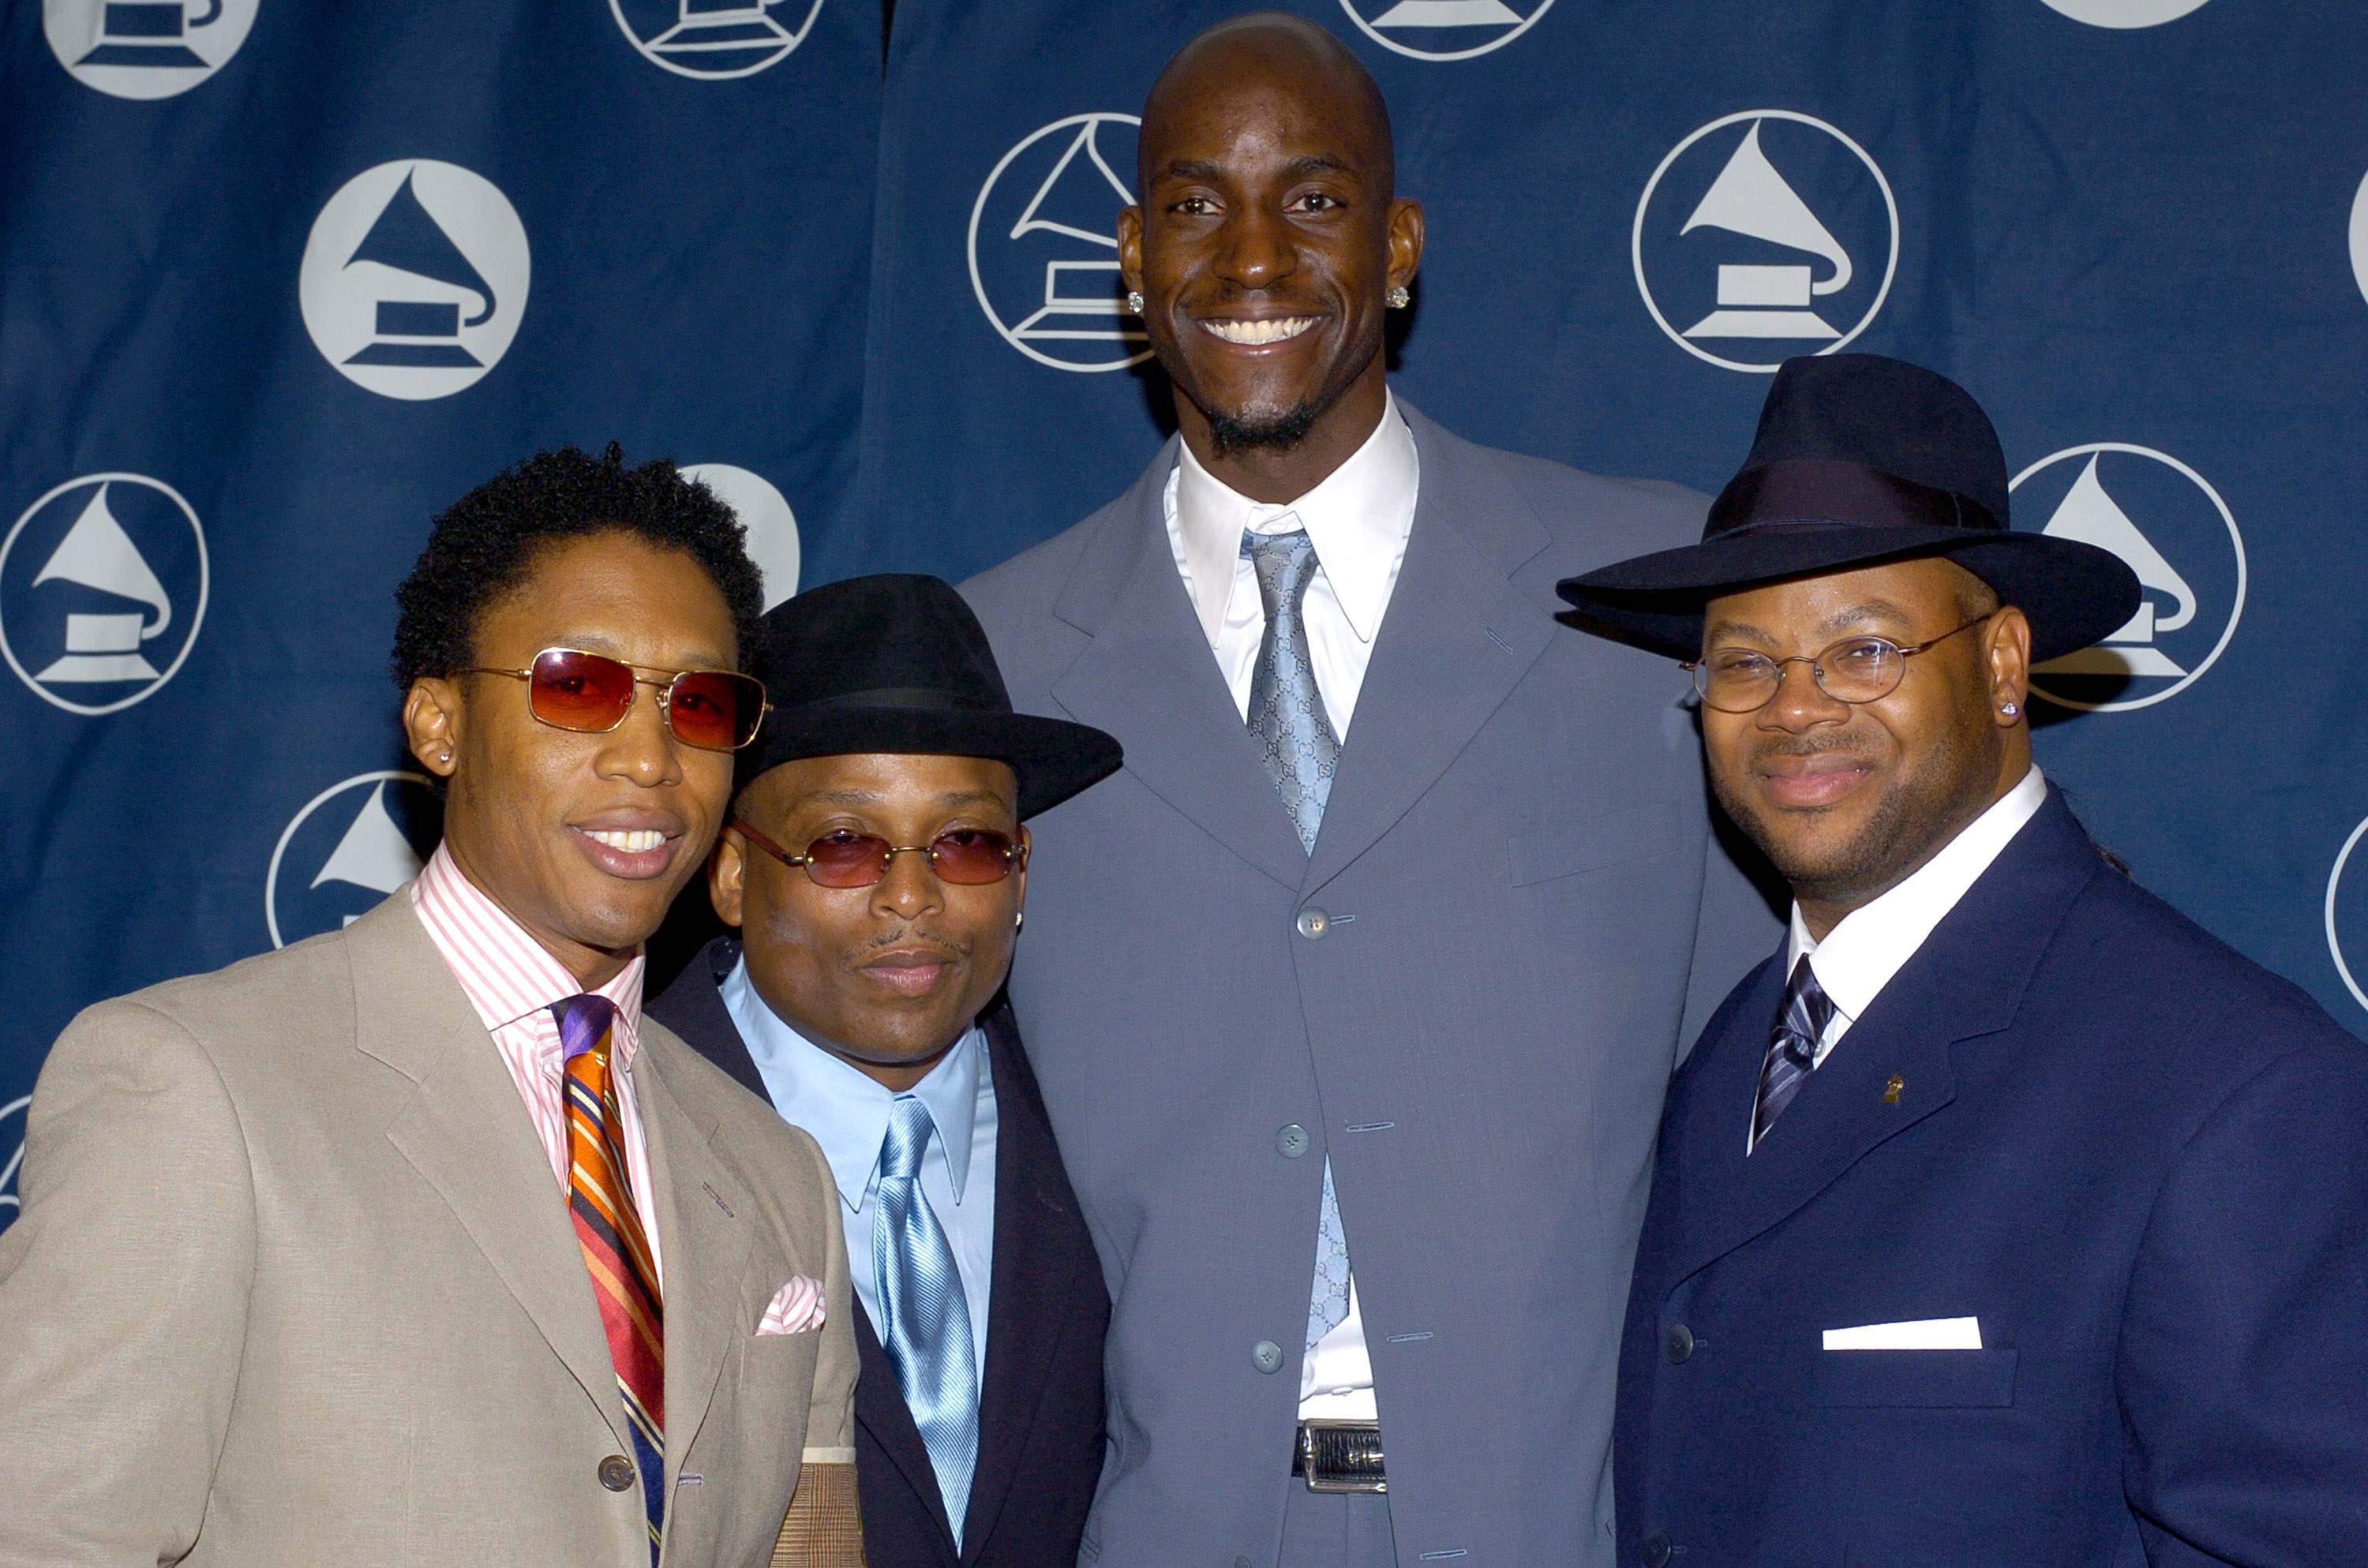 Raphael Saadiq, Terry Lewis, Kevin Garnett and Jimmy Jam